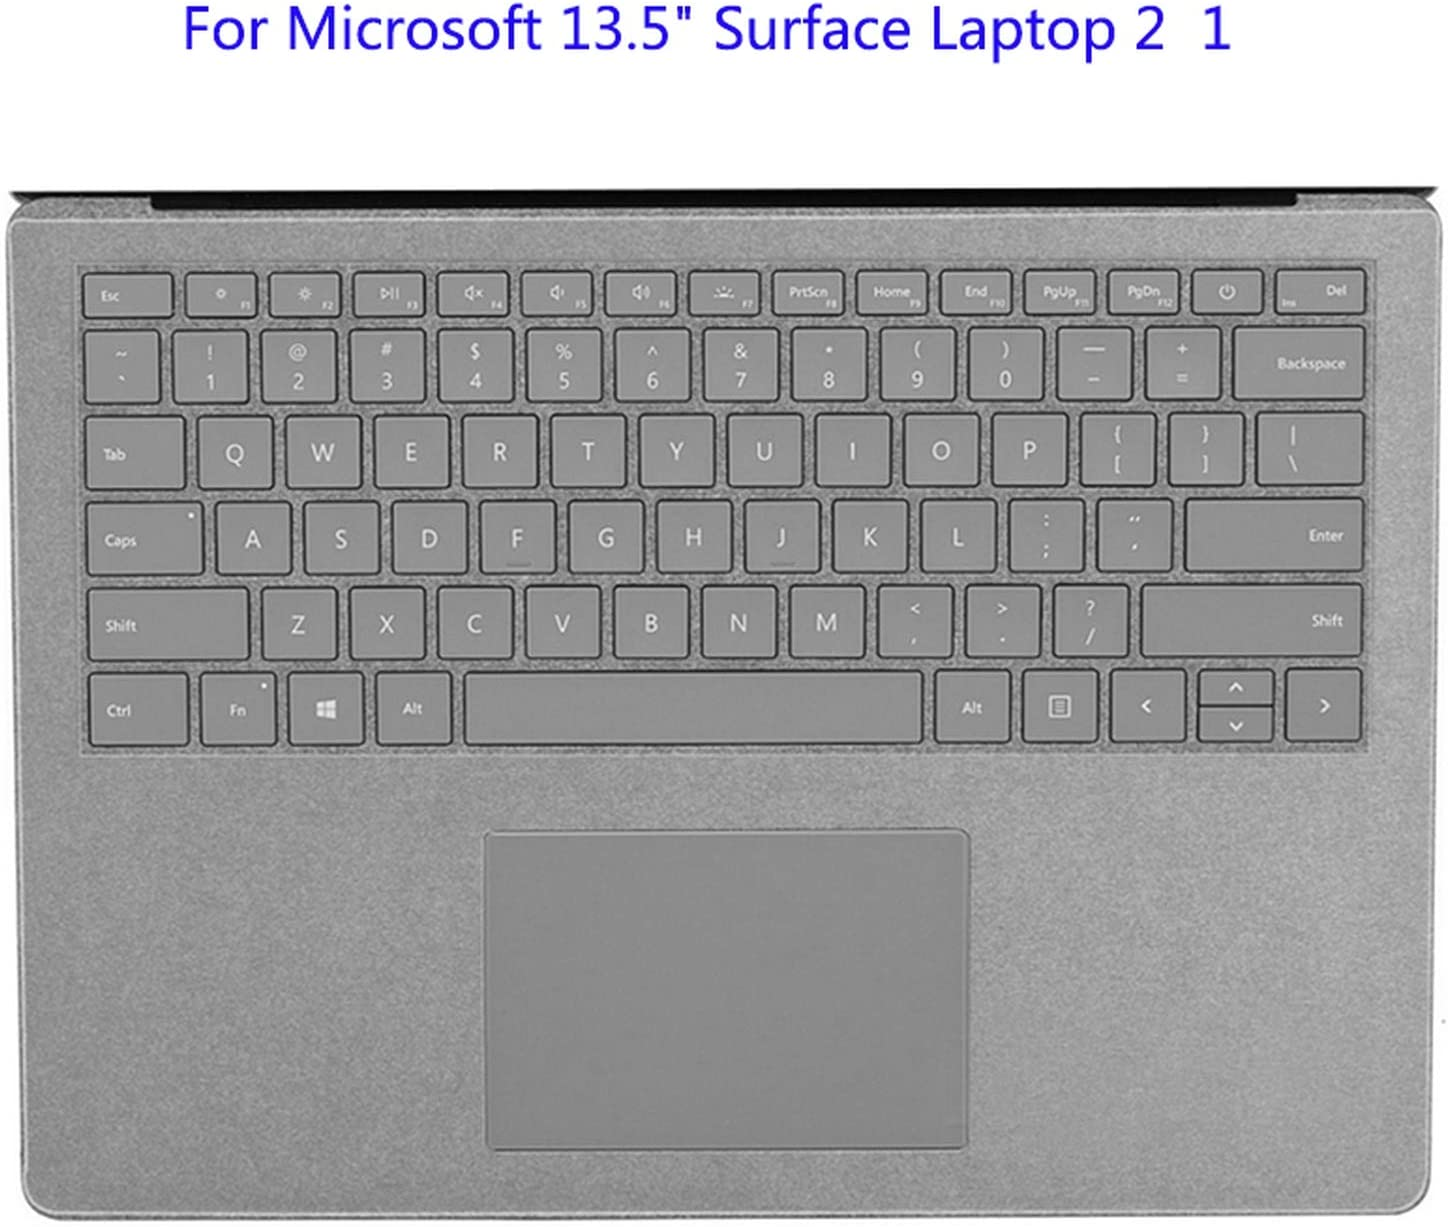 All-Equal Keyboard Cover for Microsoft Surface Laptop 2 1 Soft Keyboard Skin Film for Surface Book 2 1 New Pro 6 5 4-for Laptop 2 11